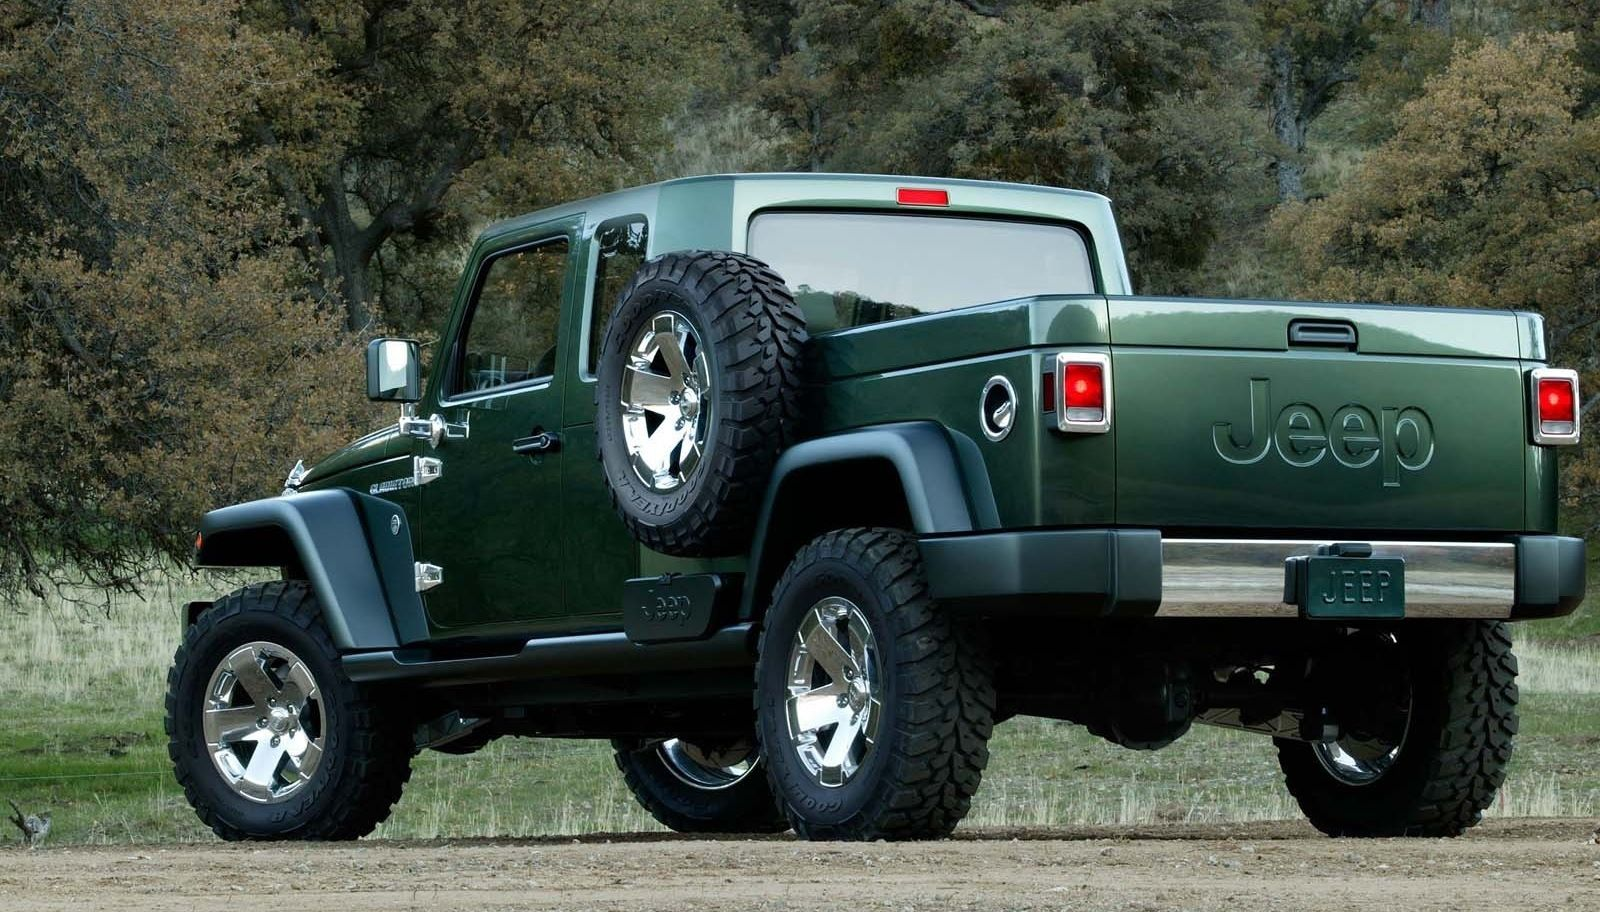 Visual Comparison Between The 2020 Jeep Gladiator And The 2005 Jeep Gladiator Concept Jeep Wrangler Truck Jeep Wrangler Pickup Truck Jeep Wrangler Pickup